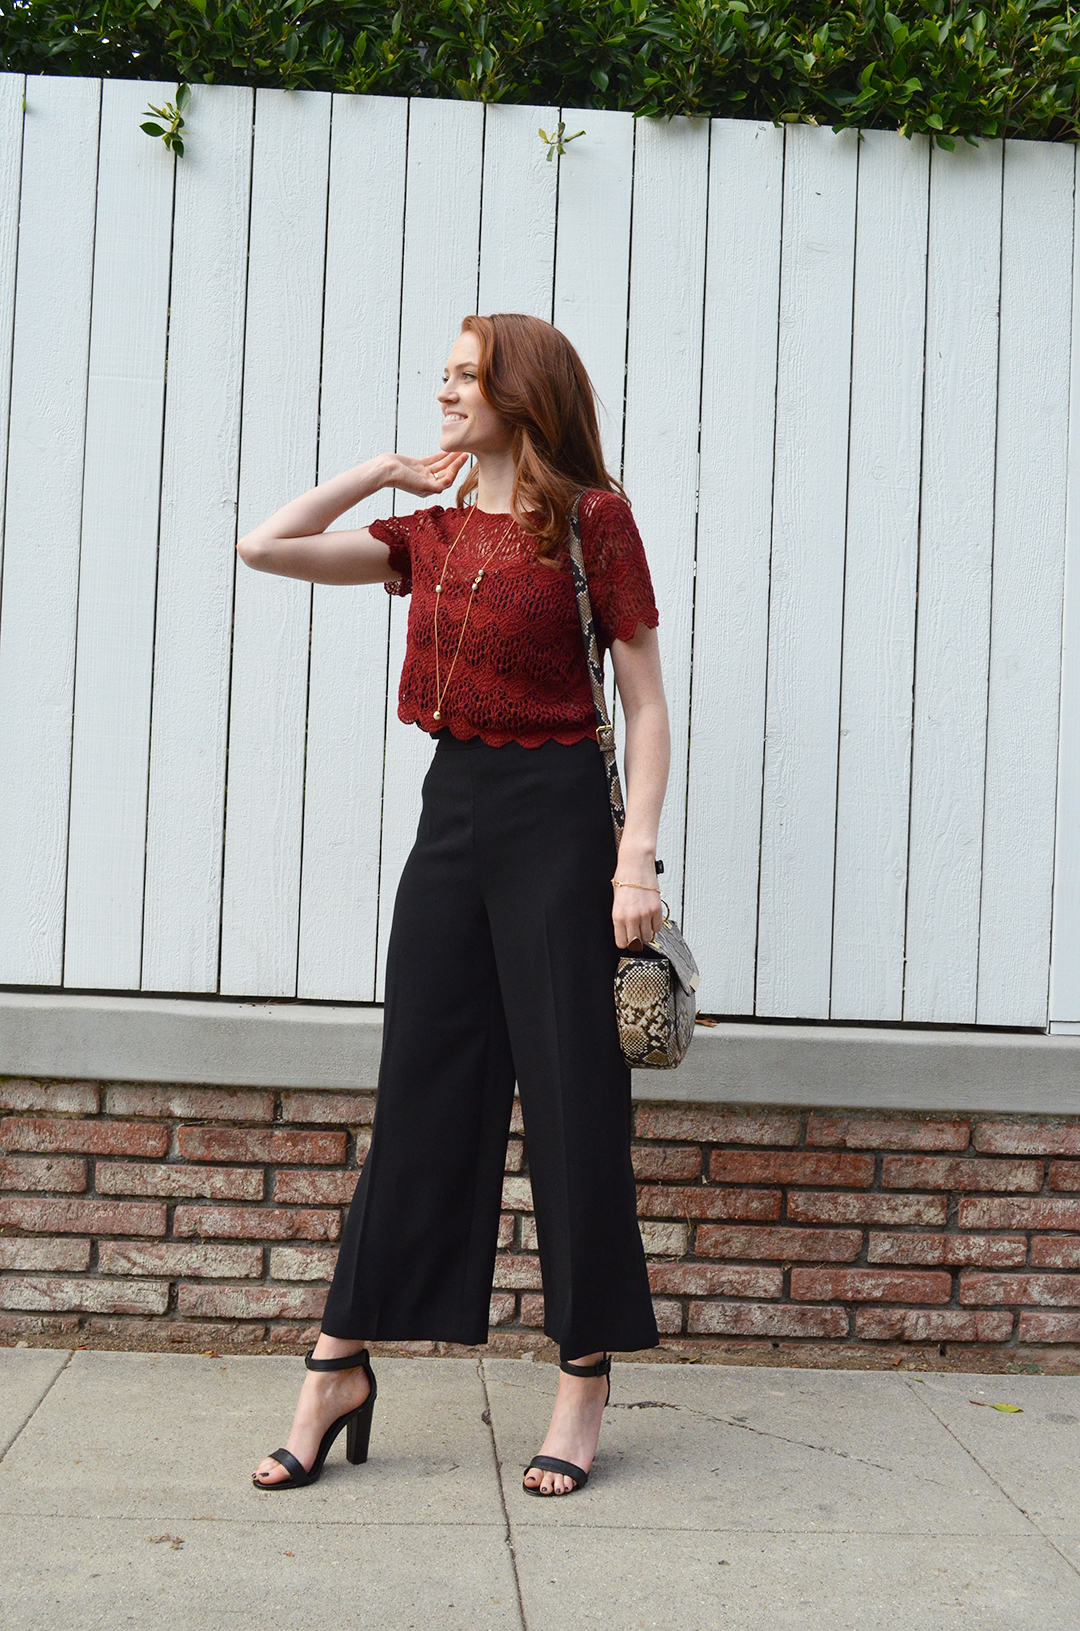 red lace crop top and high waisted black cullotes - www.whitneyhoy.com